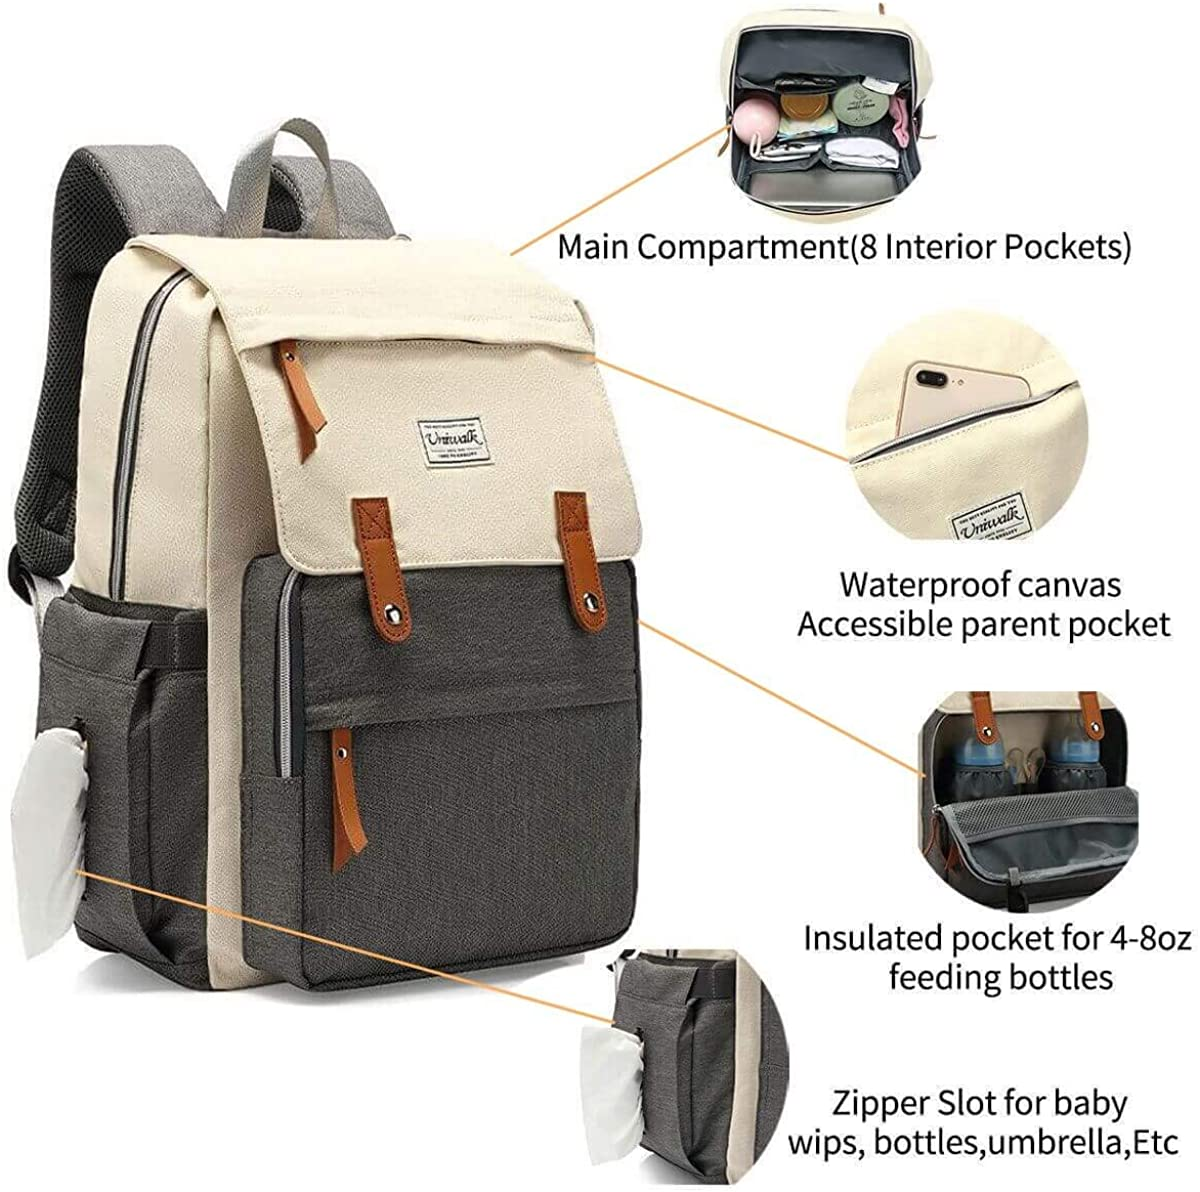 Girls//Boys Changing Pad Multifunction Waterproof Travel Maternity Baby Care Changing Bags Large Capacity,Beige/&Gray Stylish Nappy Bags for Mom /& Dad with Insulated Pockets Diaper Bag Backpack